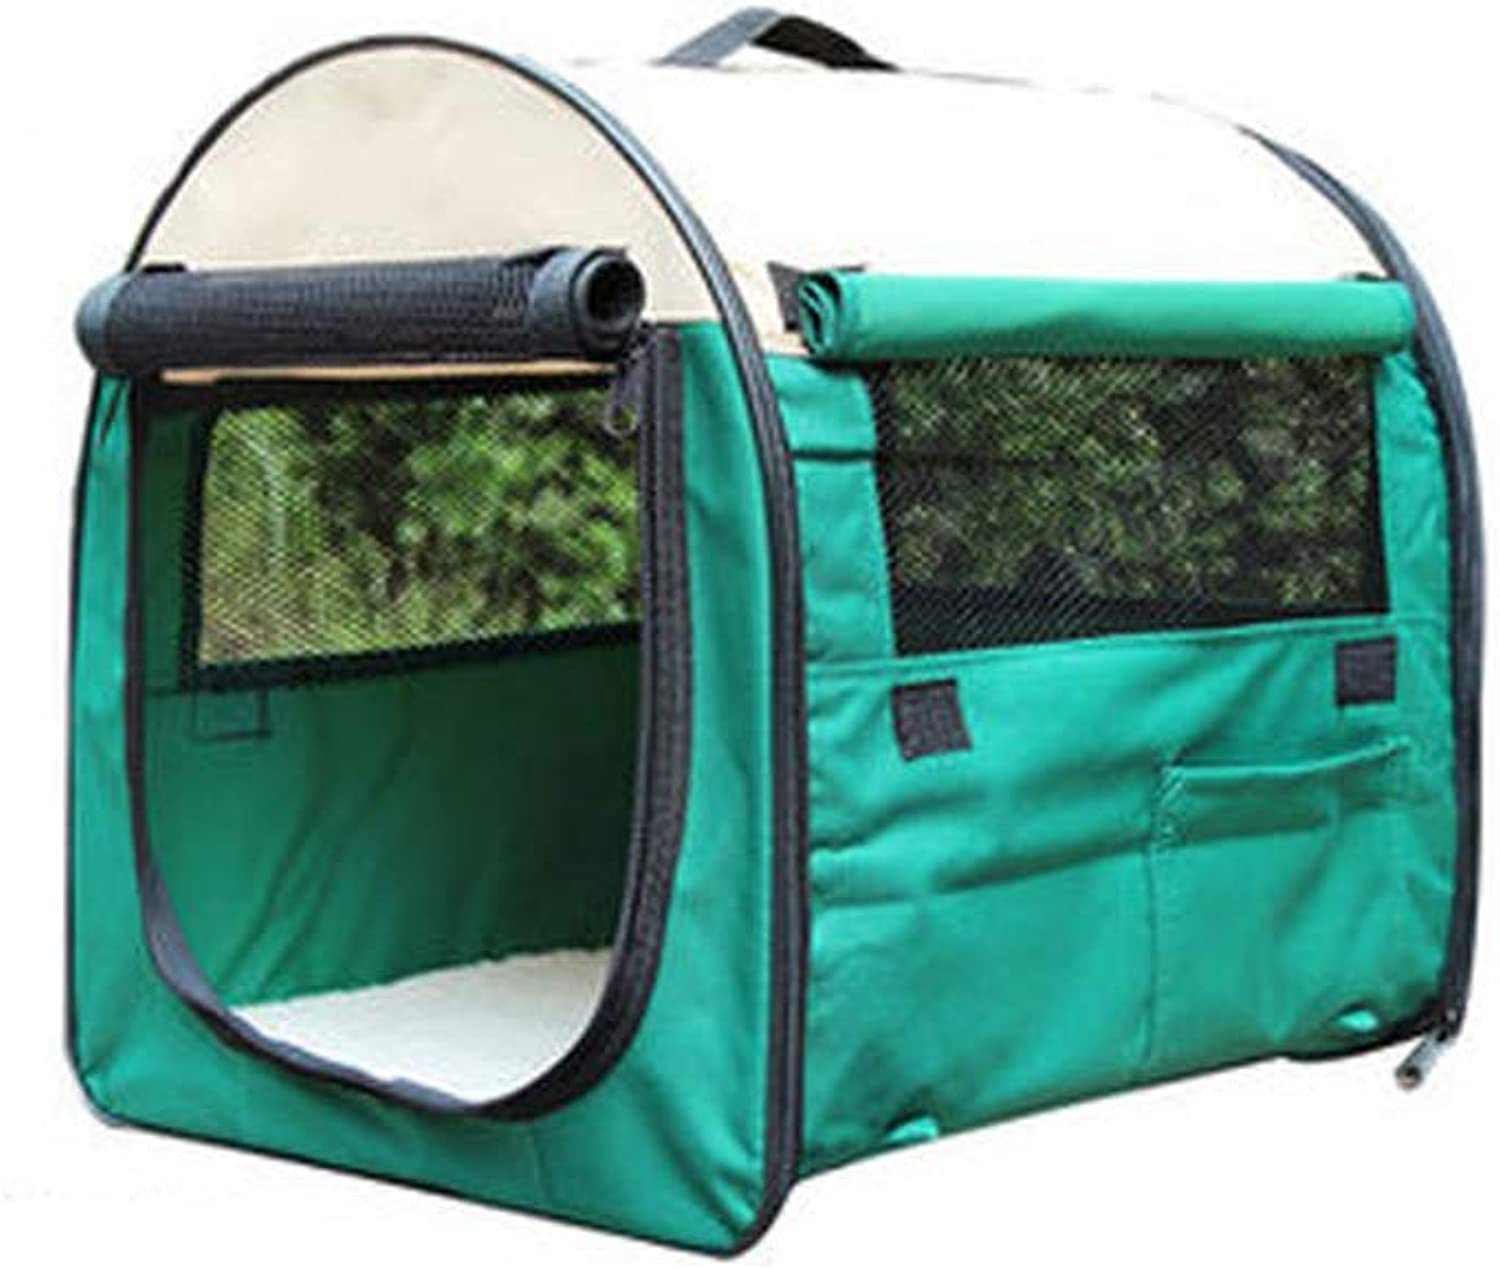 Pet Travel Folding Tent, Pet Kennel Waterproof Oxford Cloth Steel Wire Frame Fleece Mat Surrounding Grid Breathable for Outdoor Hiking Camping,Green,S